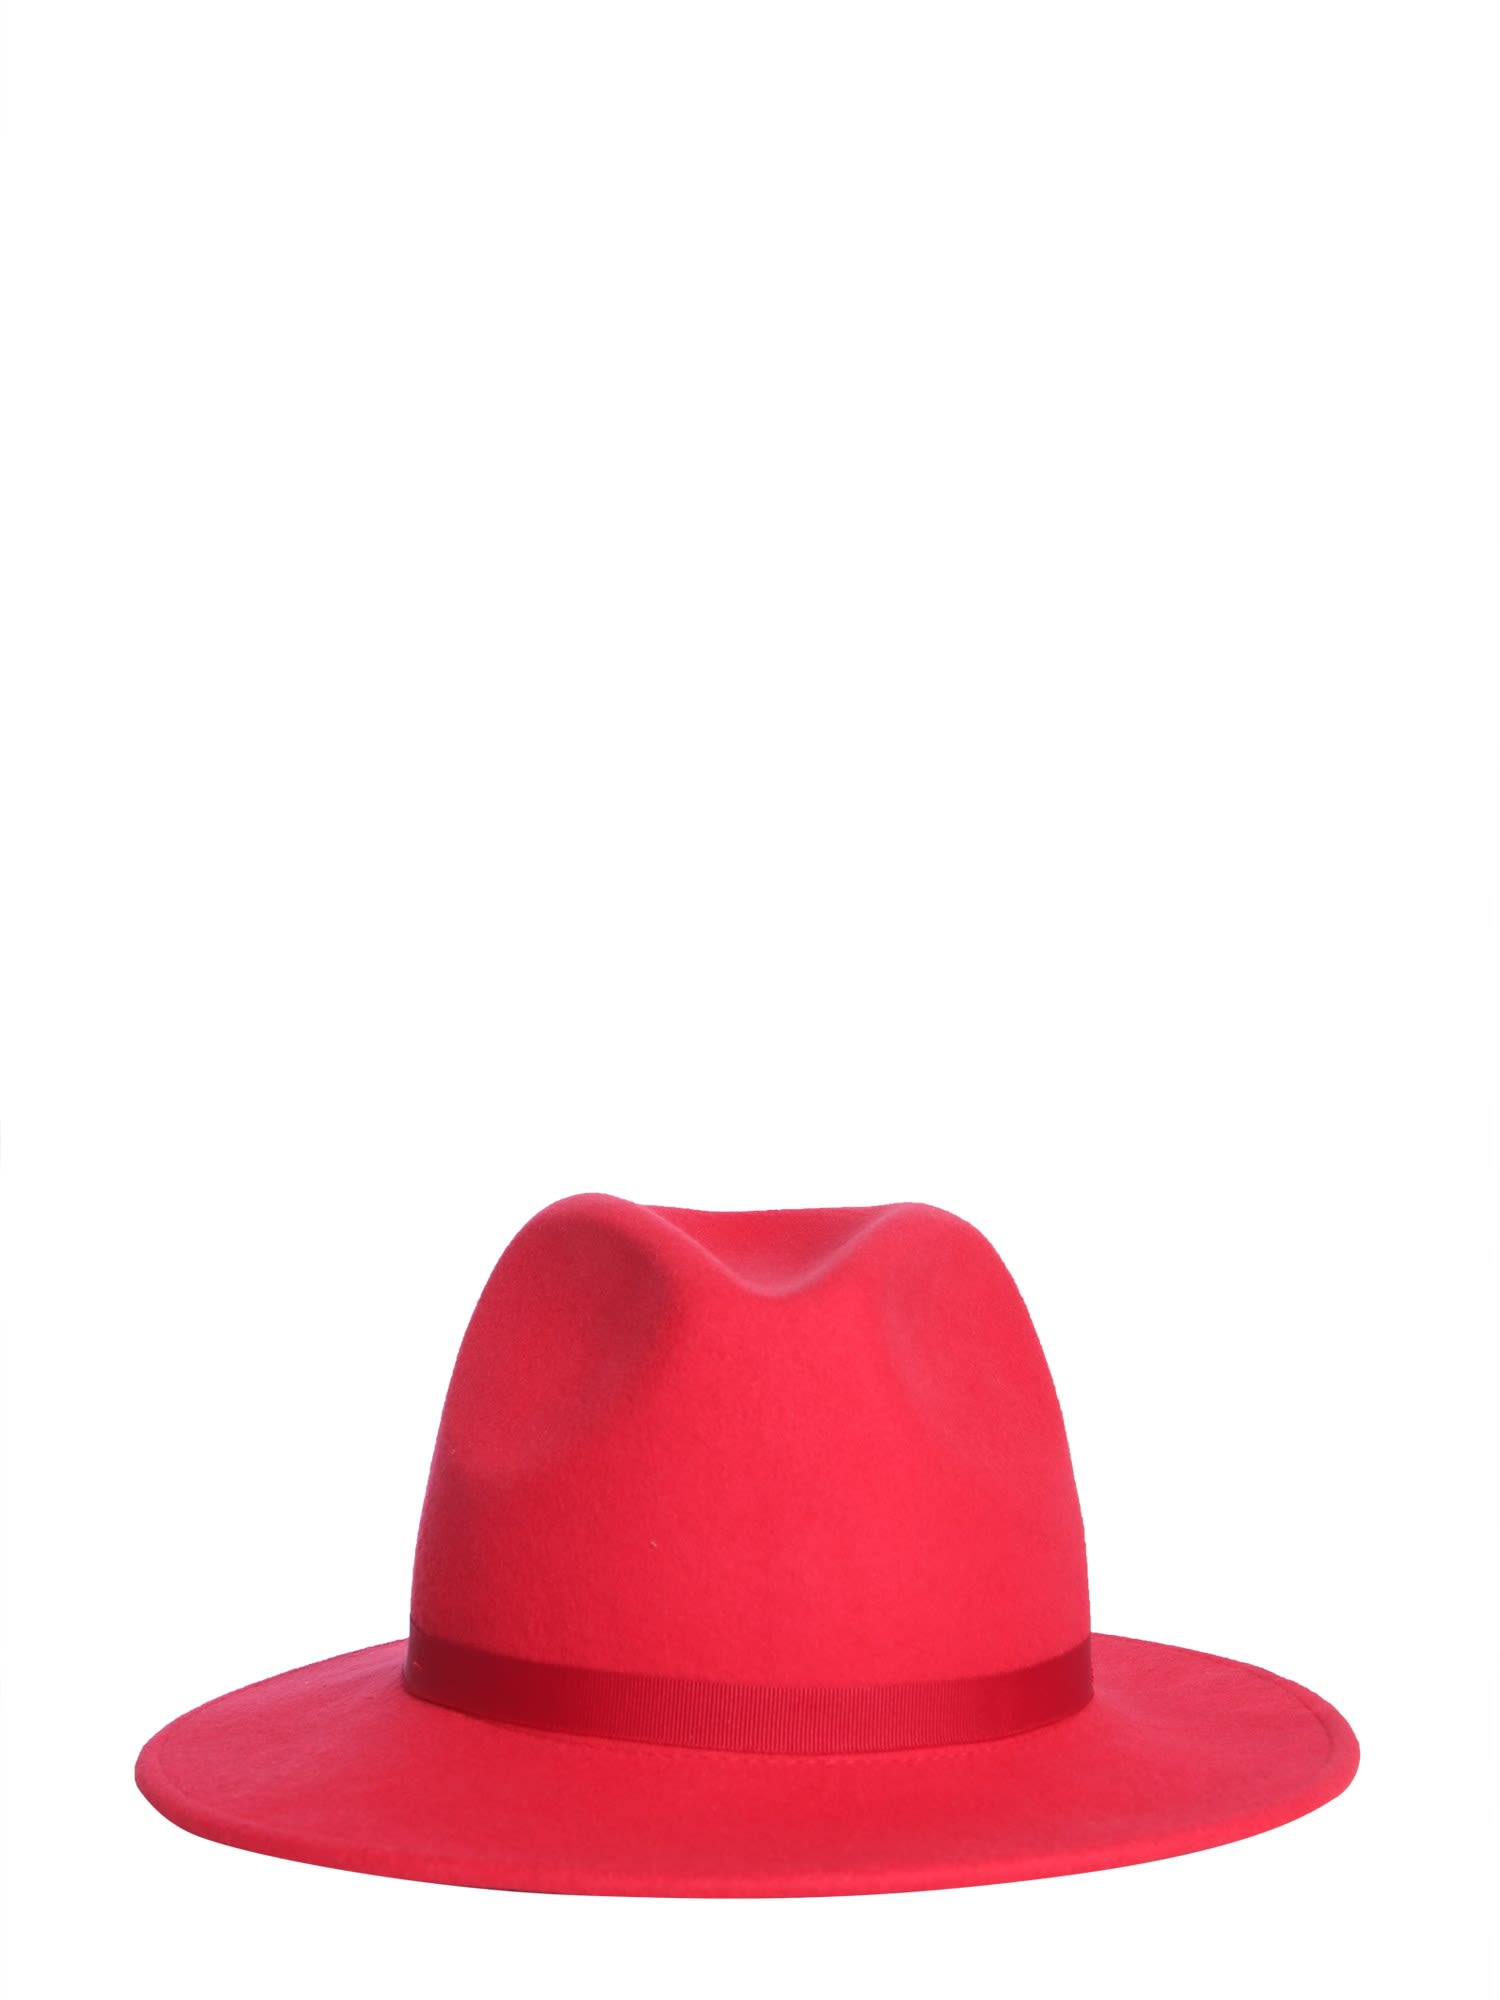 b8a36fc961790 PS by Paul Smith PS by Paul Smith Fedora Lined Hat - Red - 10800732 ...